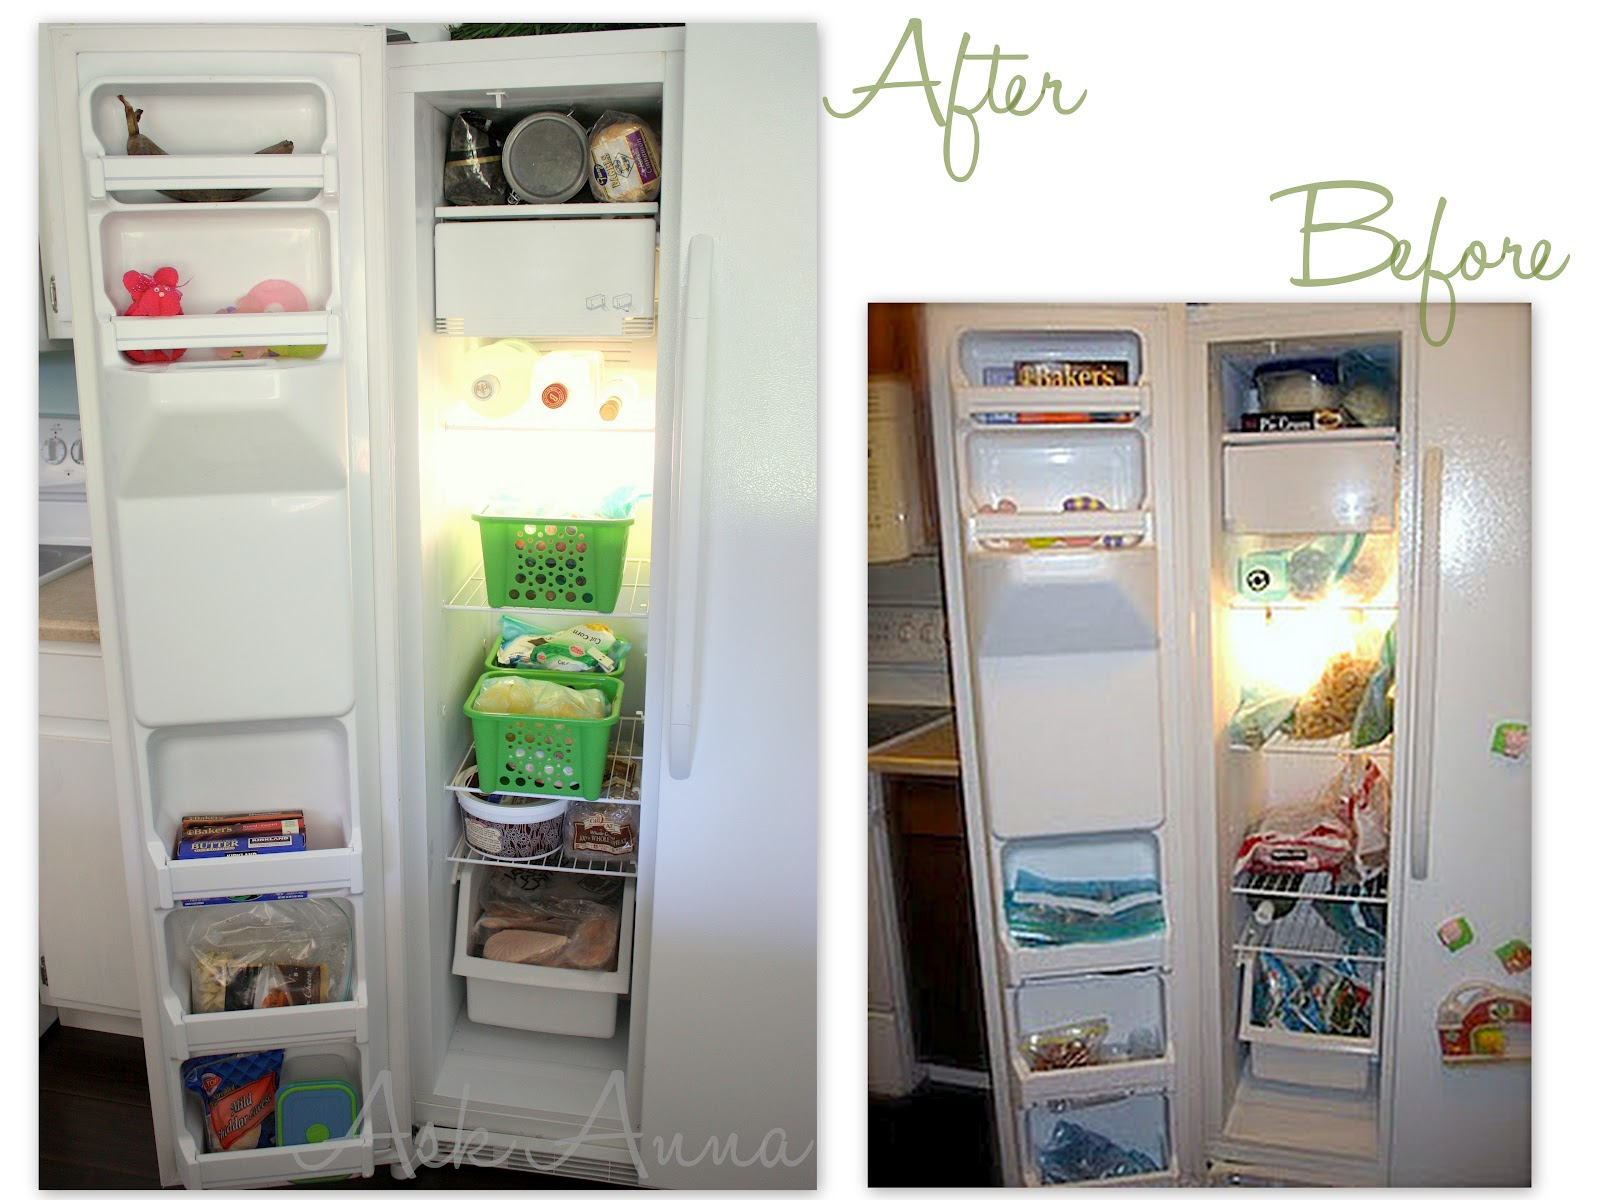 Fridge & Freezer Organization - Ask Anna